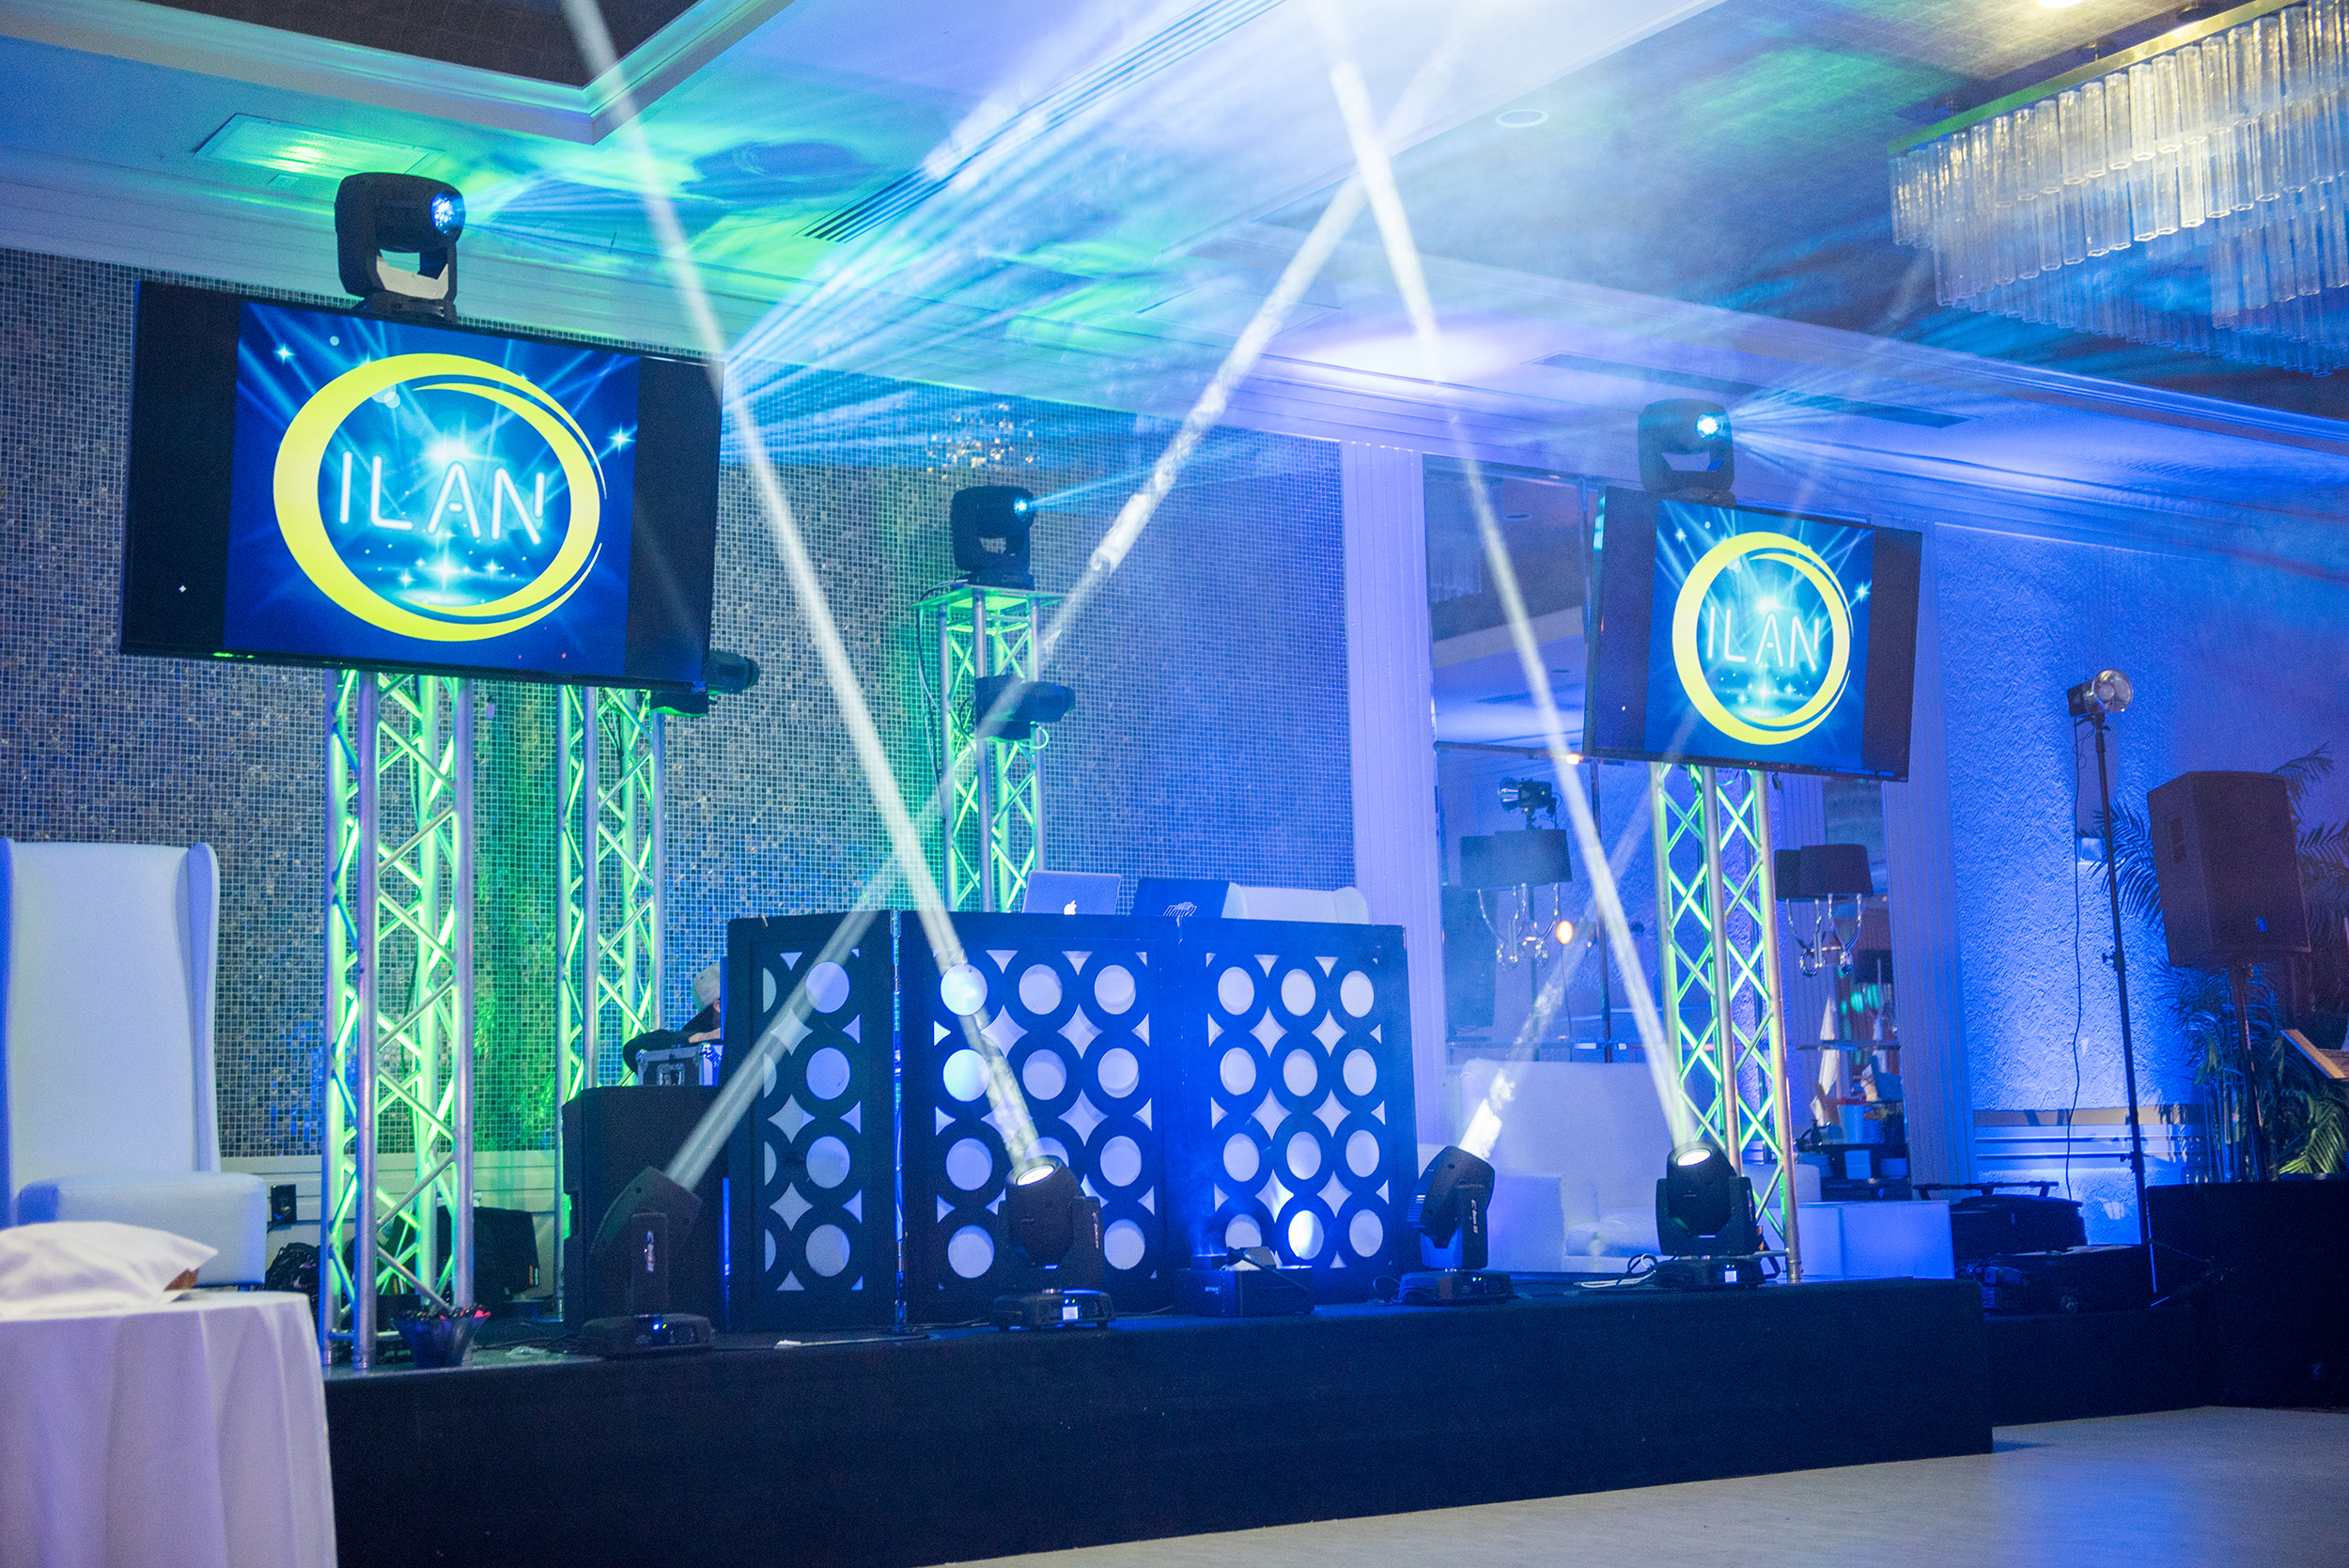 mitzvah-event-photography-south-florida-alison-frank-photography_11.jpg